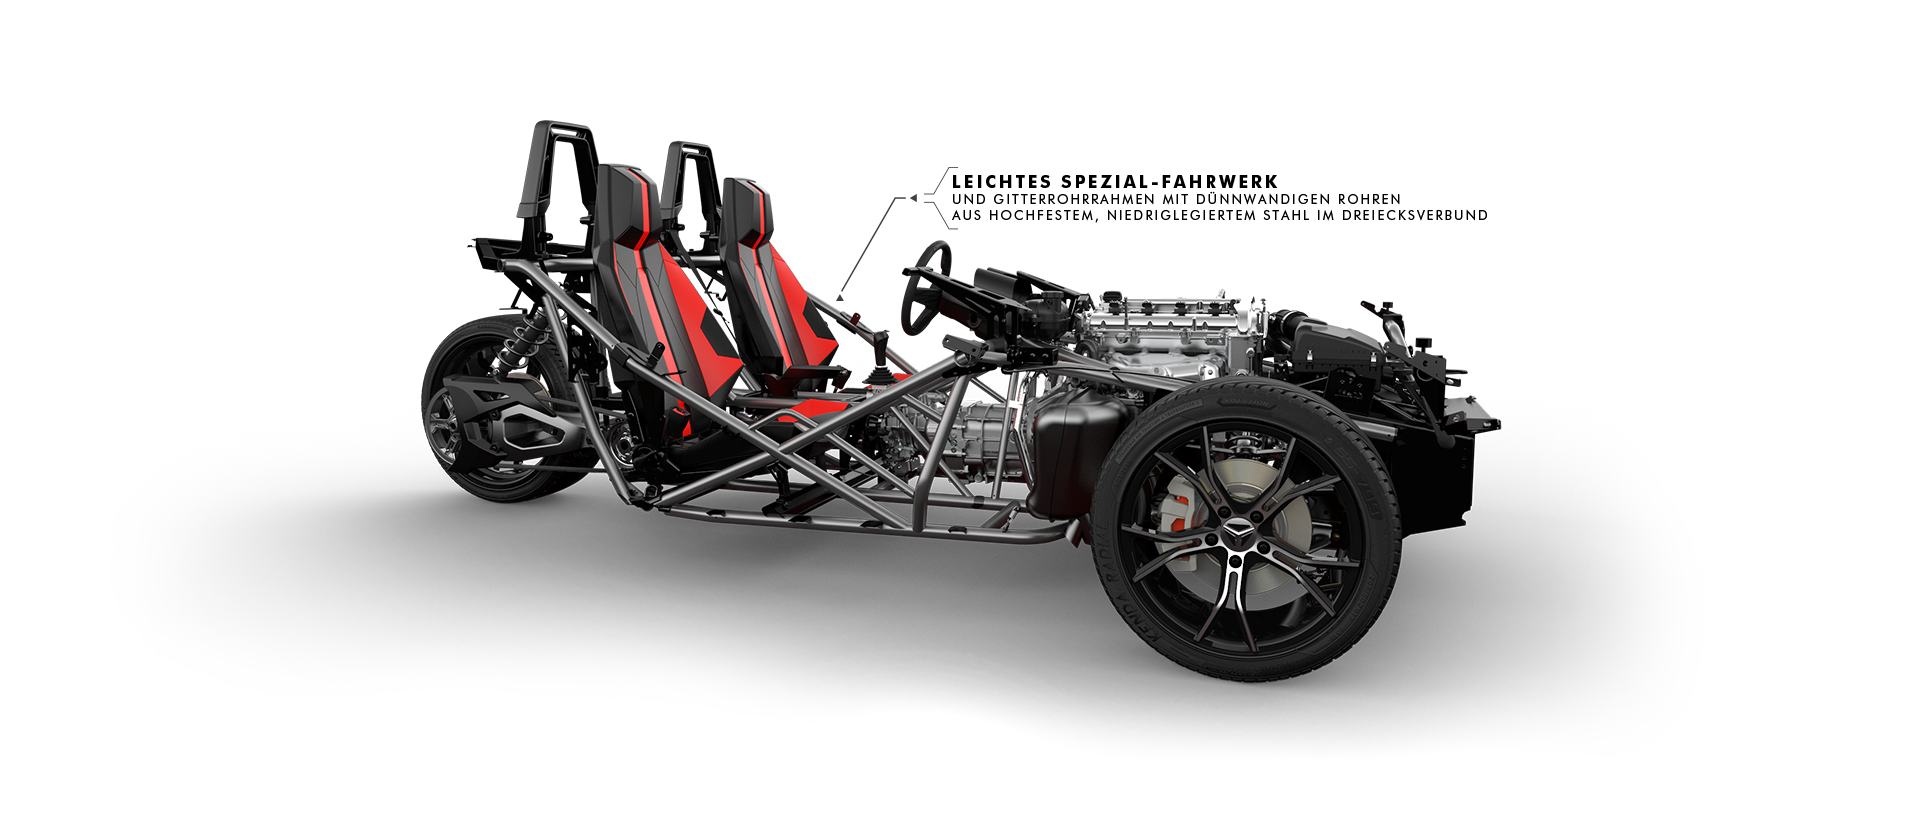 1 SLG Features Chassis